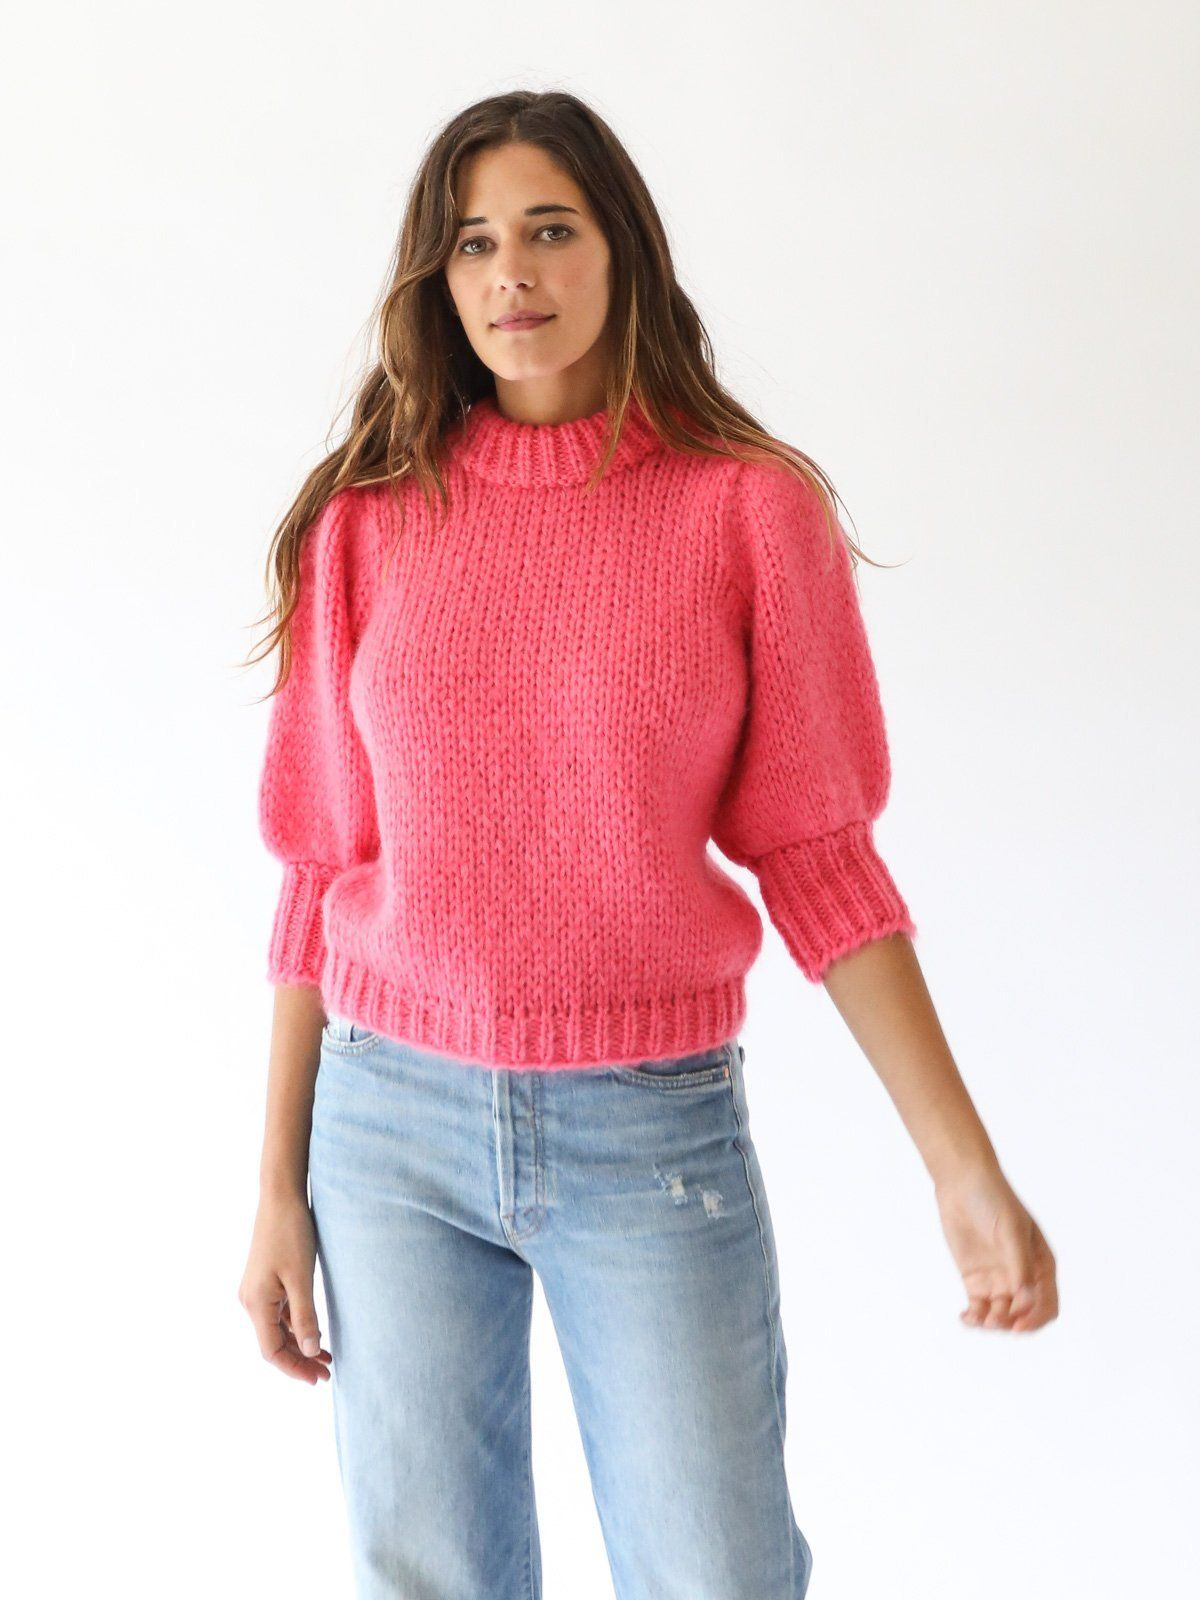 bfe95412d6b8 GANNI - The Julliard Mohair Sweater in Hot Pink